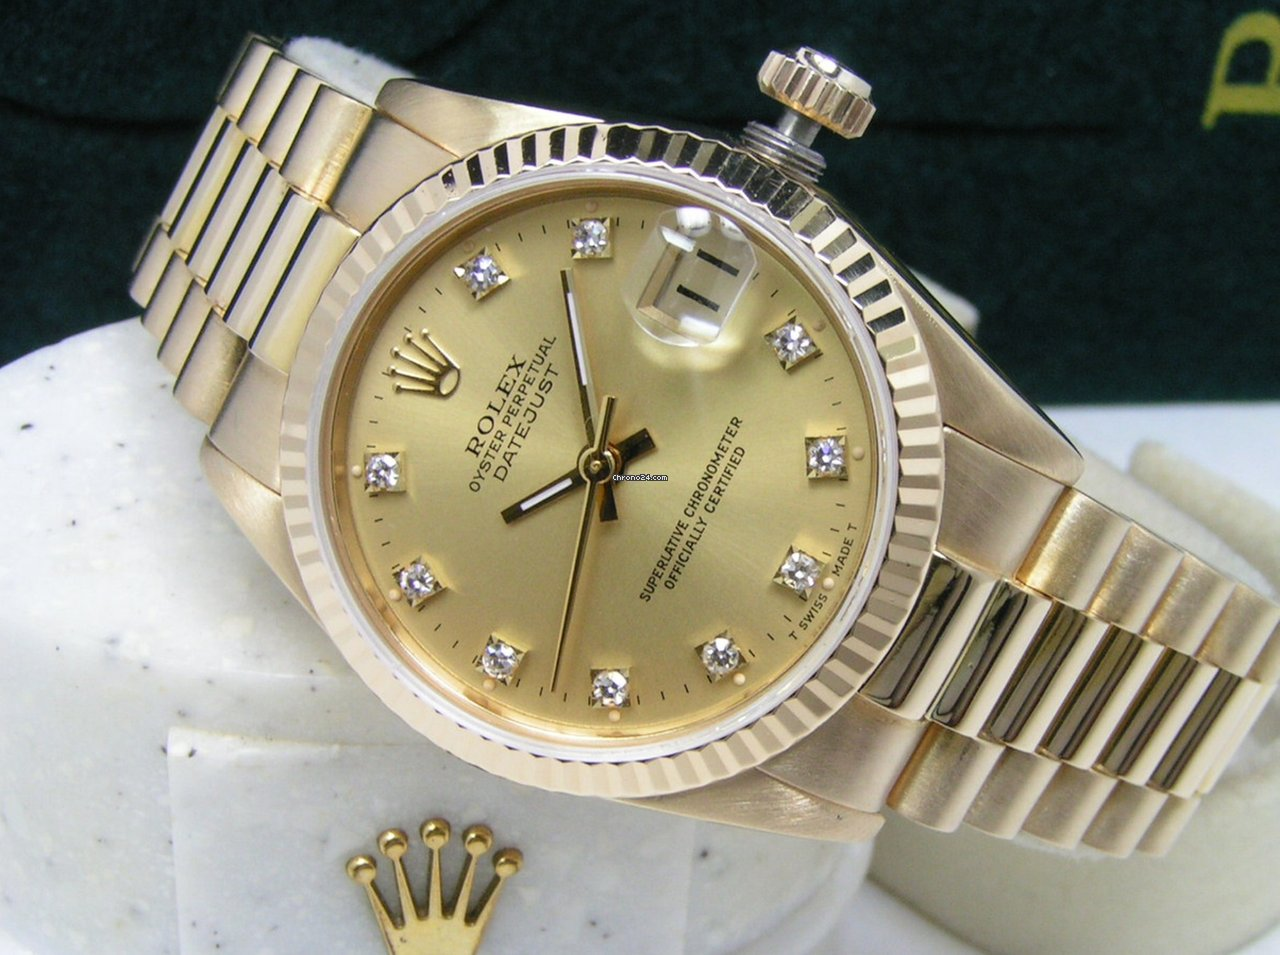 b540f335d9b Rolex Datejust - all prices for Rolex Datejust watches on Chrono24